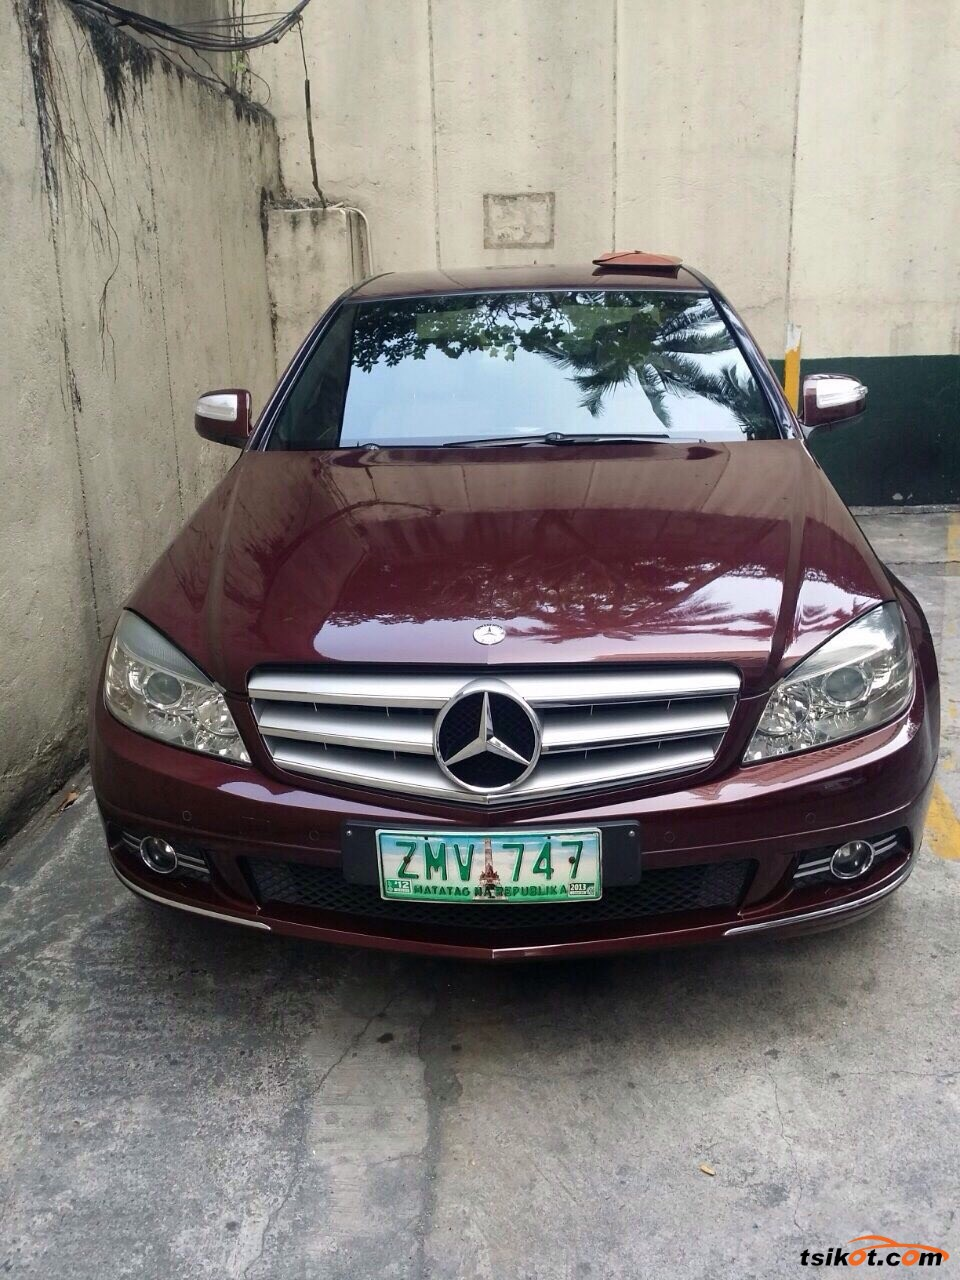 Mercedes benz c class 2008 car for sale metro manila for Mercedes benz c class sale